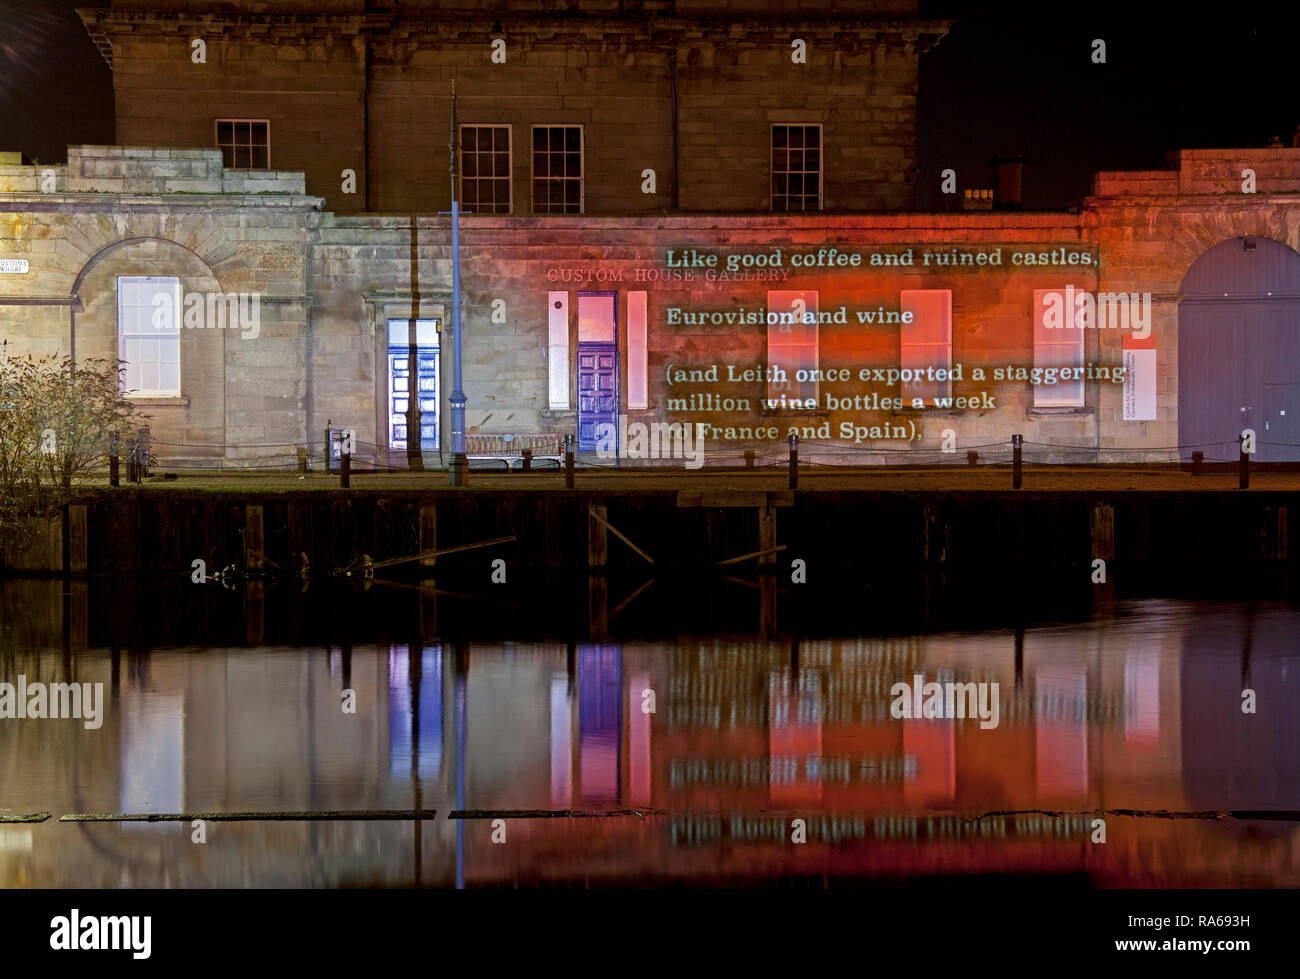 Edinburgh, Scotland, UK. 01 January 2019. The Tron and Custom House Leith, Edinburgh. Message from the Skies returns to Edinburgh's Hogmanay on Tuesday 1 January with a selection of love letters written to Europe. The words of six internationally celebrated writers - Billy Letford, Chitra Ramaswamy,  Kapka Kassabova, Louise Welsh, Stef Smith and William Dalrymple - will illuminate and animate buildings around the city during the first month of 2019. Message from the Skies runs until Friday 25 January 2019. Stock Photo